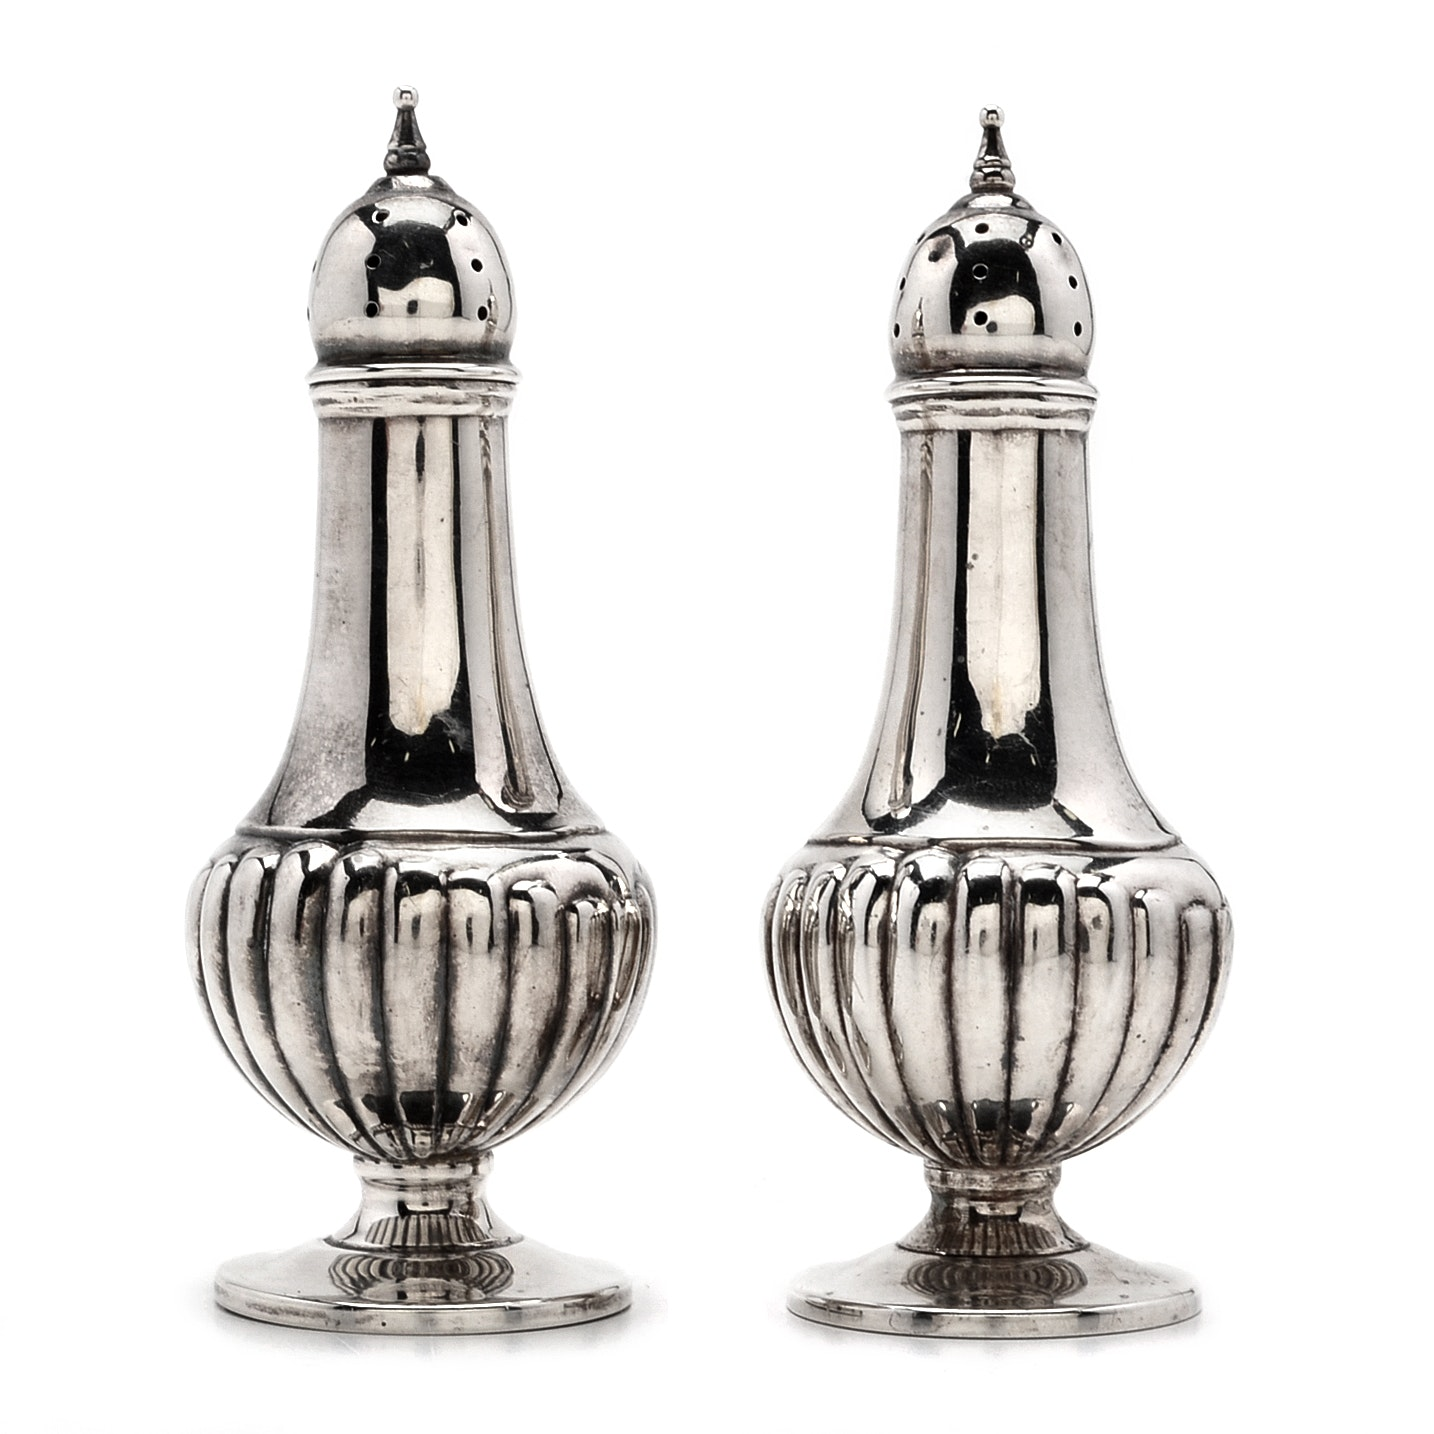 M. Fred Hirsch Sterling Silver Dome-Shaped Salt and Pepper Shakers